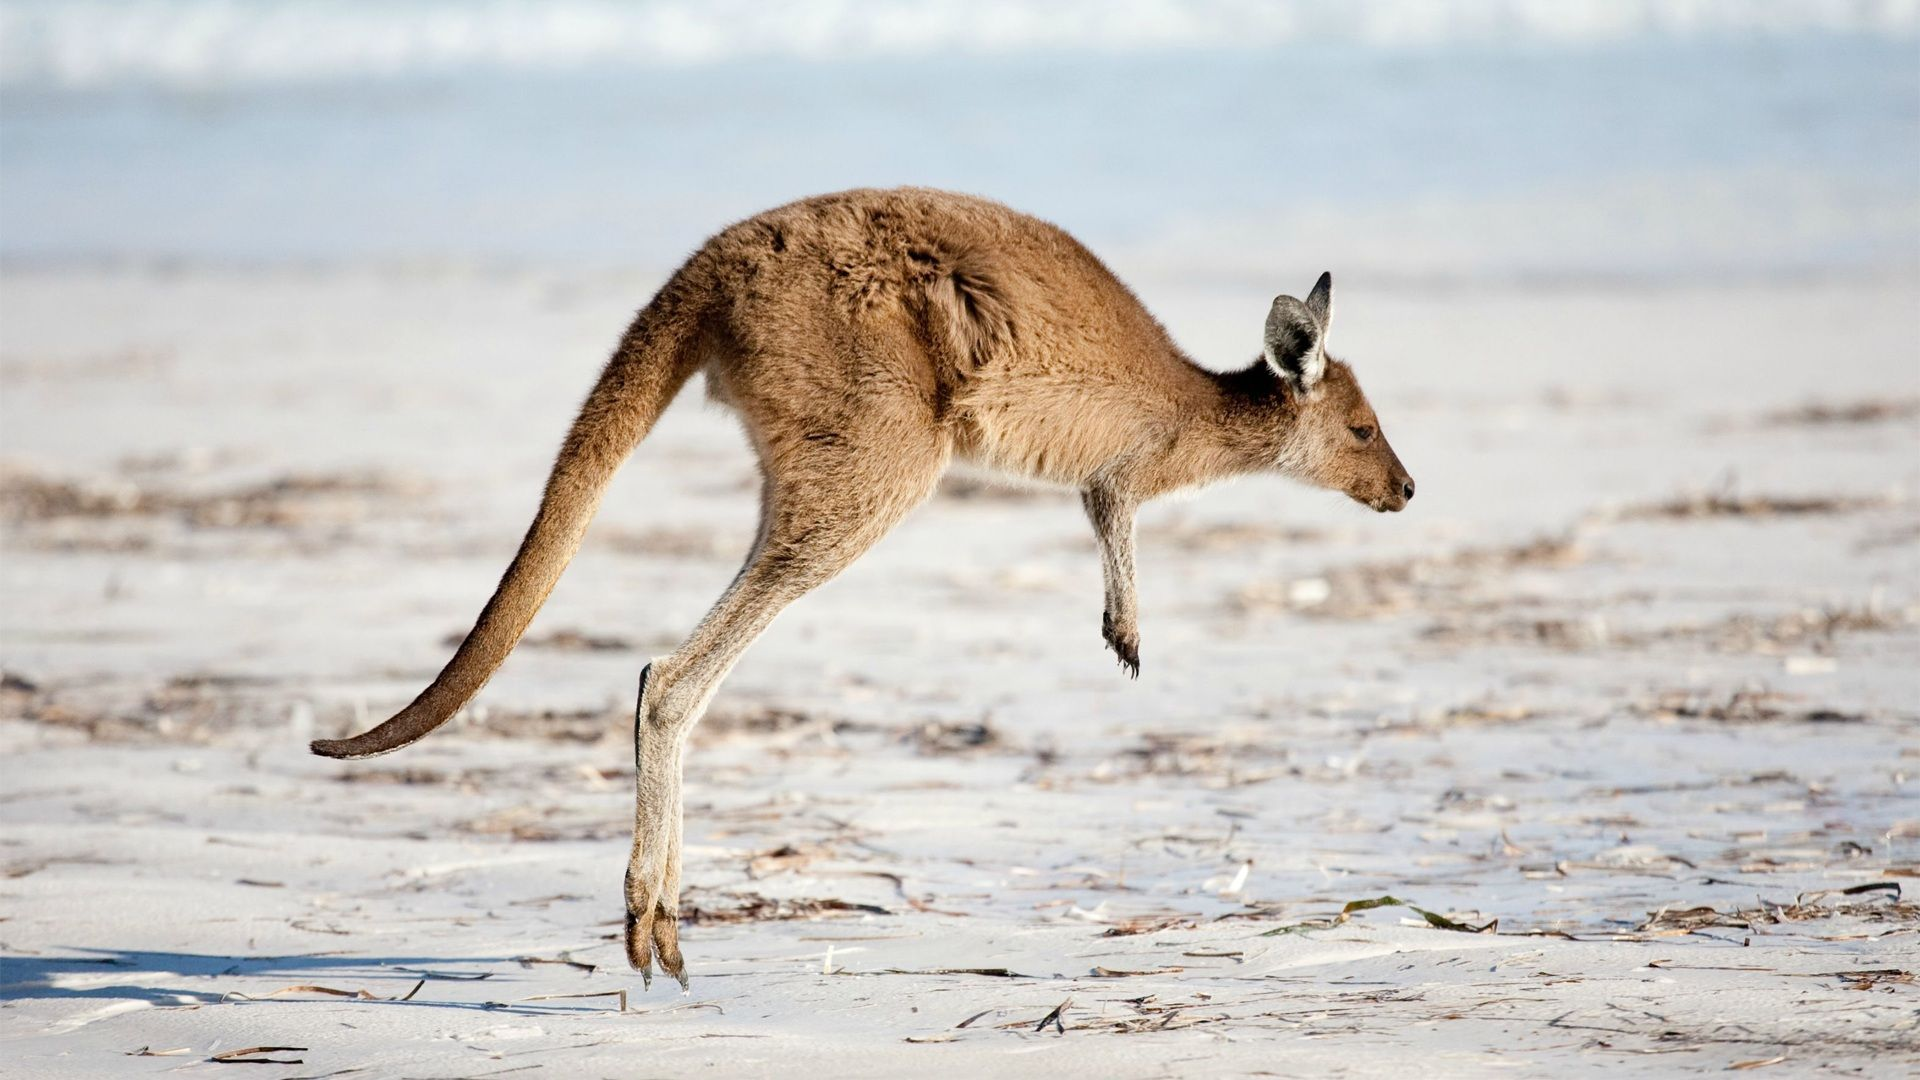 Kangaroo Wallpapers Image Photos Pictures Backgrounds